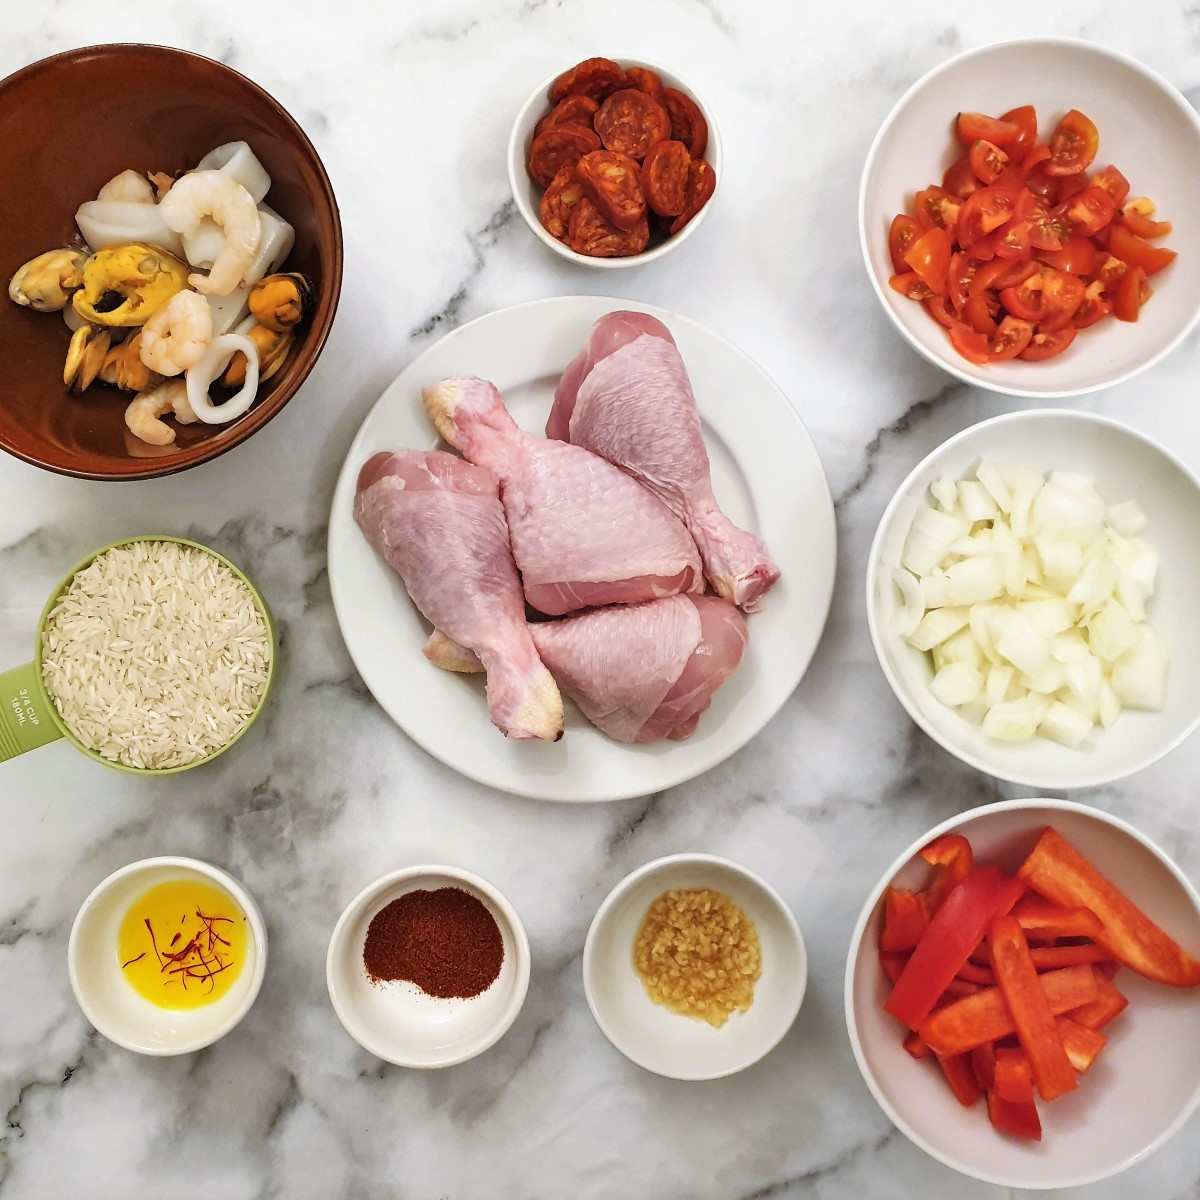 Ingredients for chicken and seafood paella.